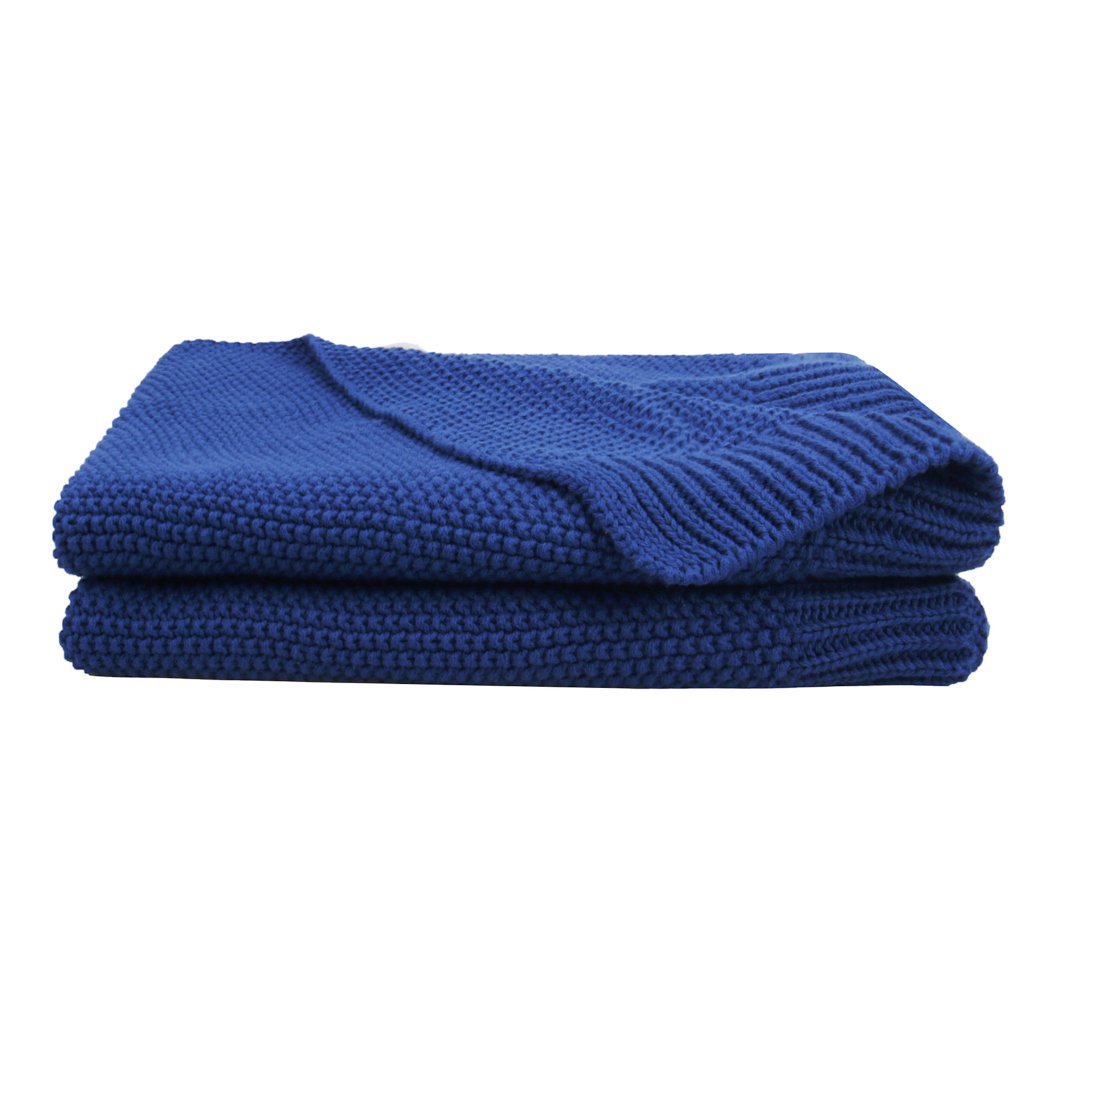 "100% Cotton Soft Warm Knit Solid Blanket Bed Sofa 30"" x 40"" Royal Blue"